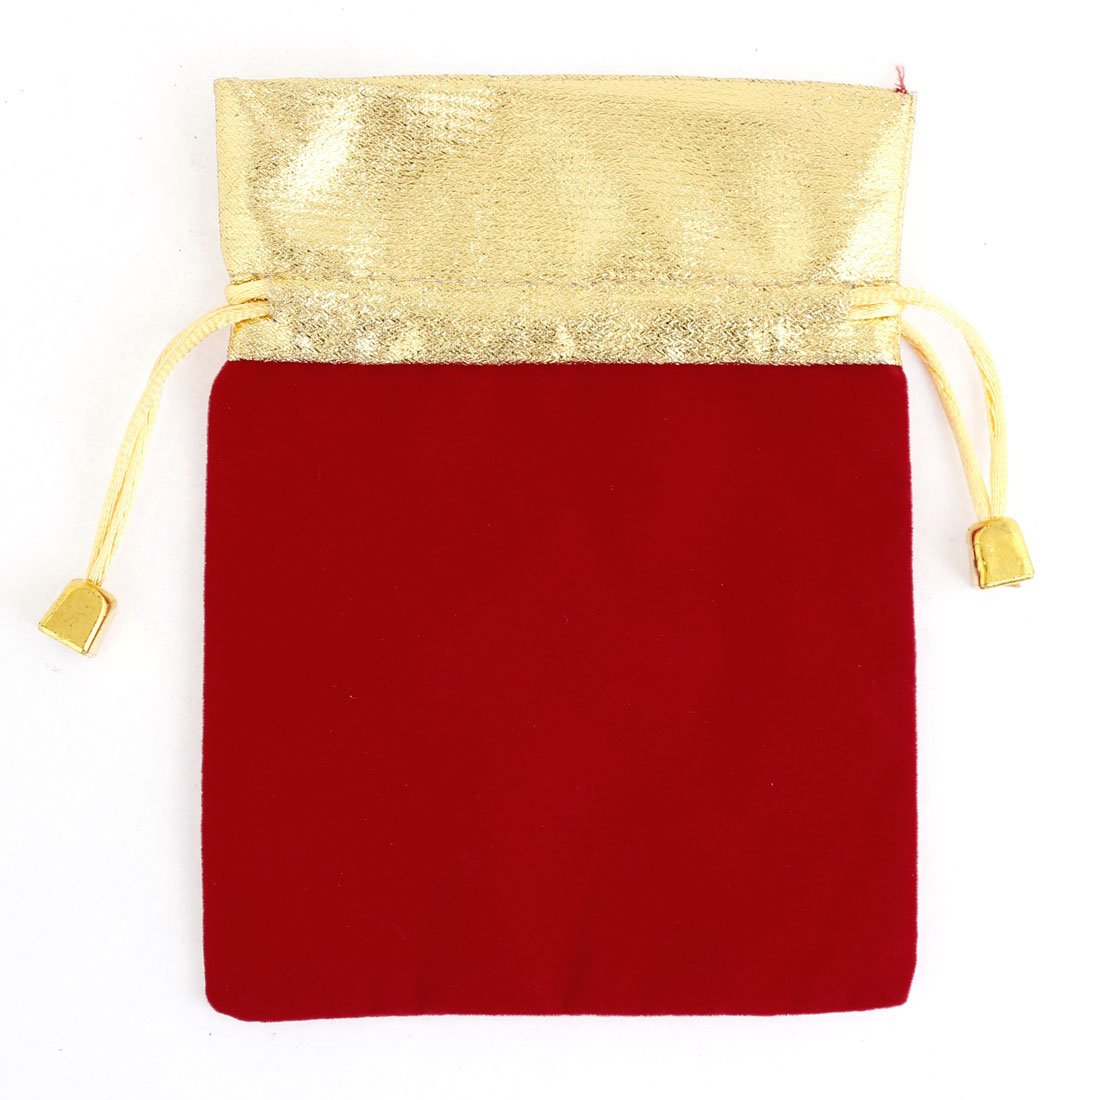 Gold Tone Drawstring Red Velvet Jewelry Birthday Gift Bag 15.5 x 11.5cm